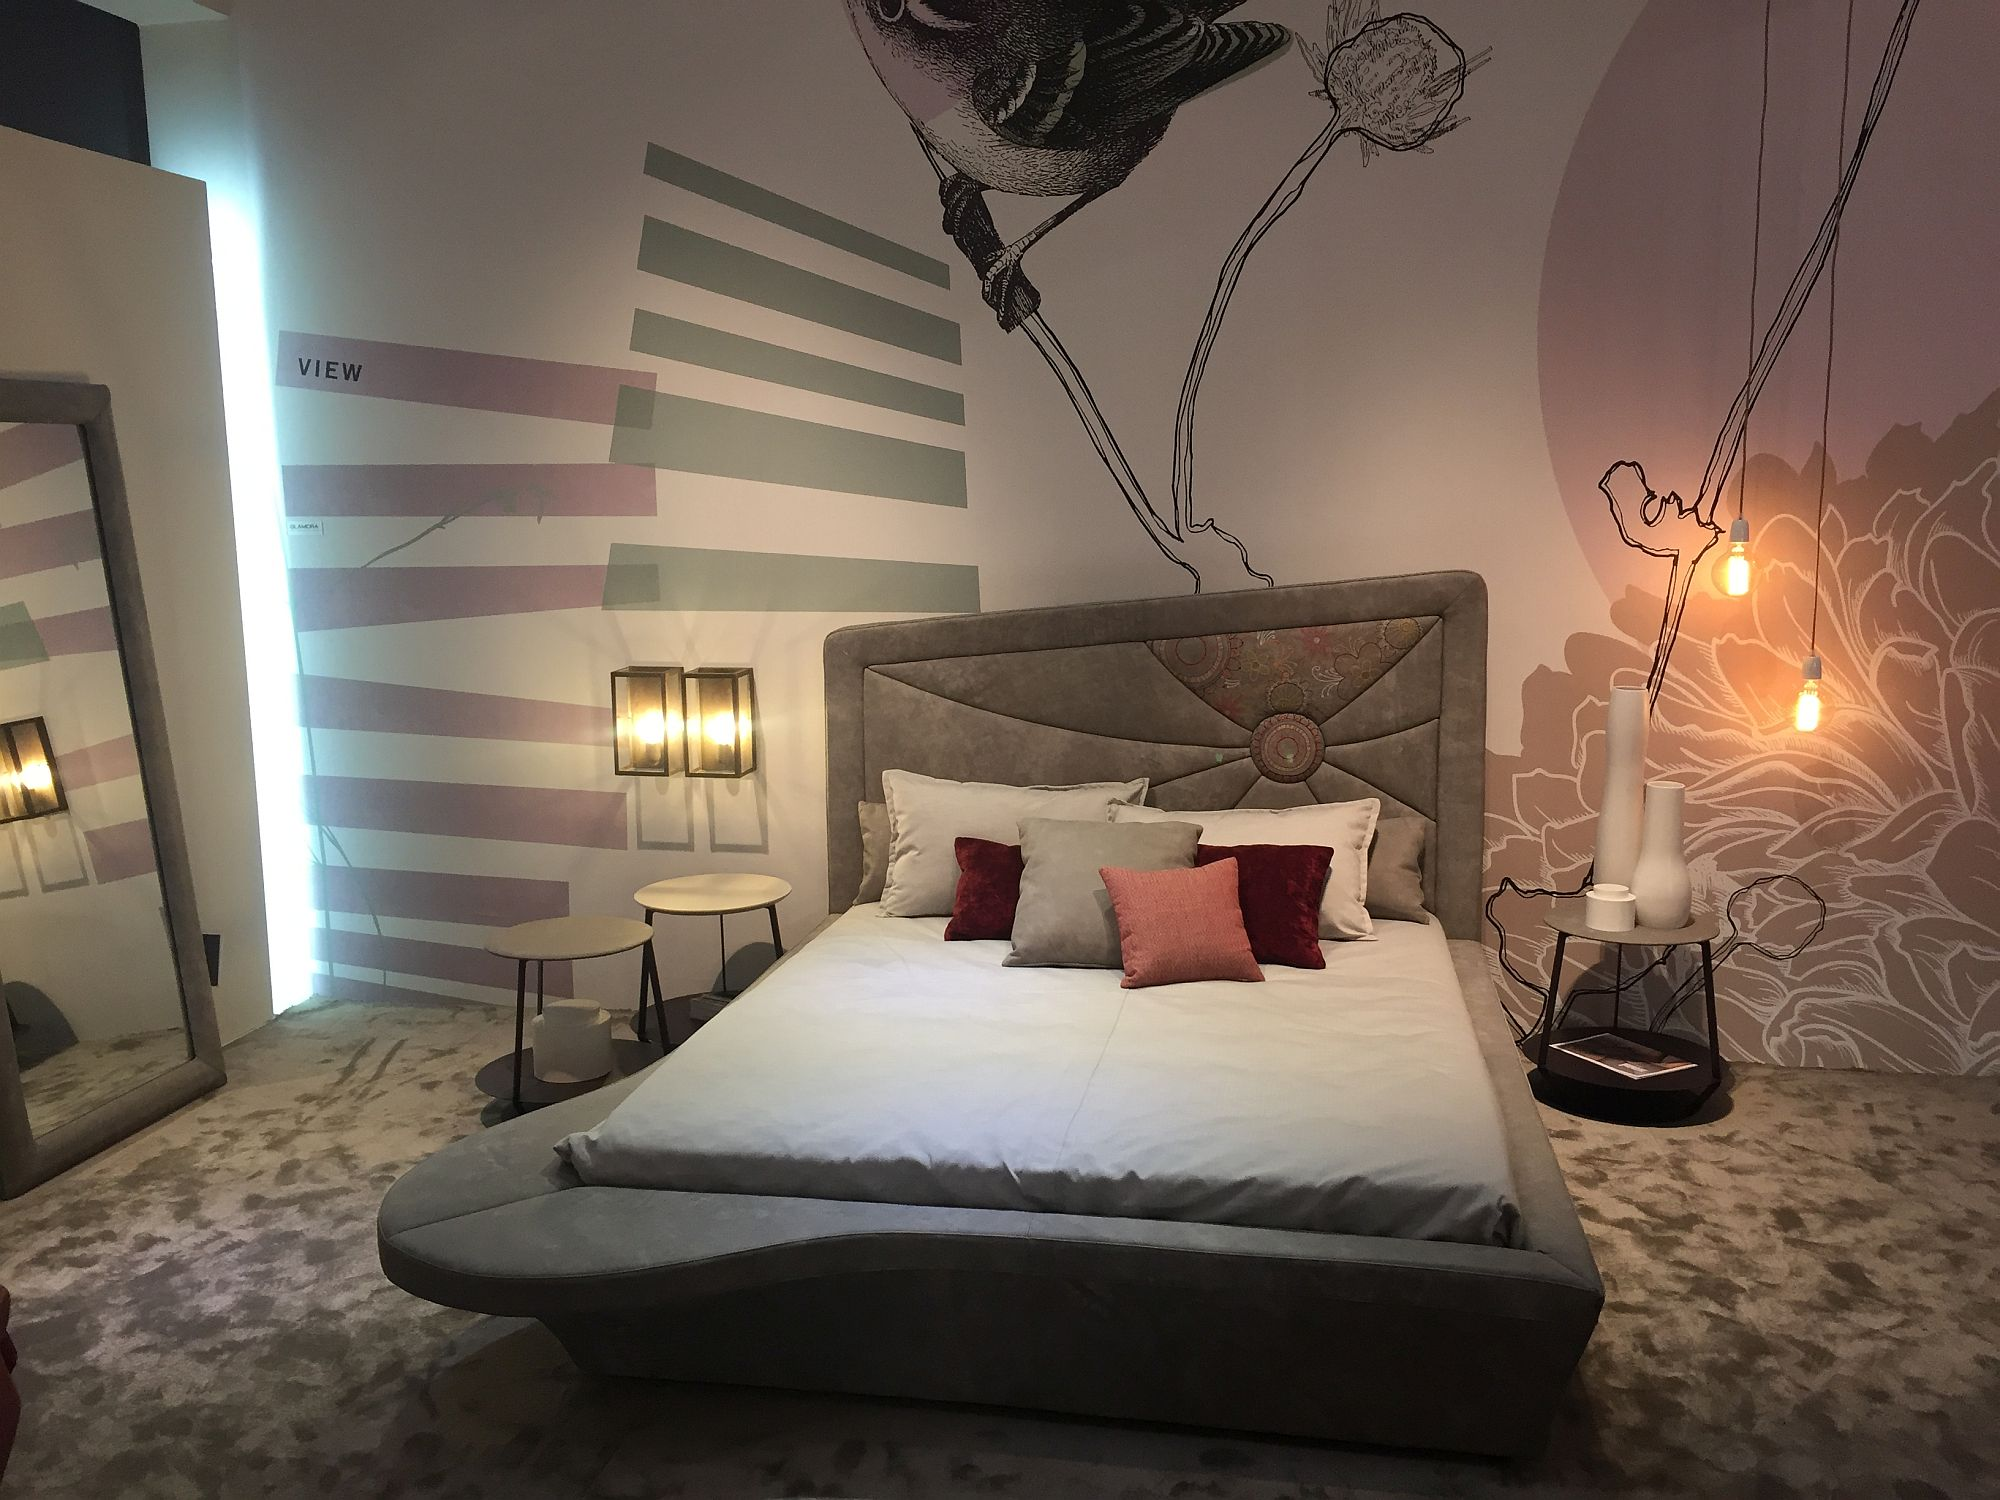 Ingenious bed design with headboard that offers an artistic twist